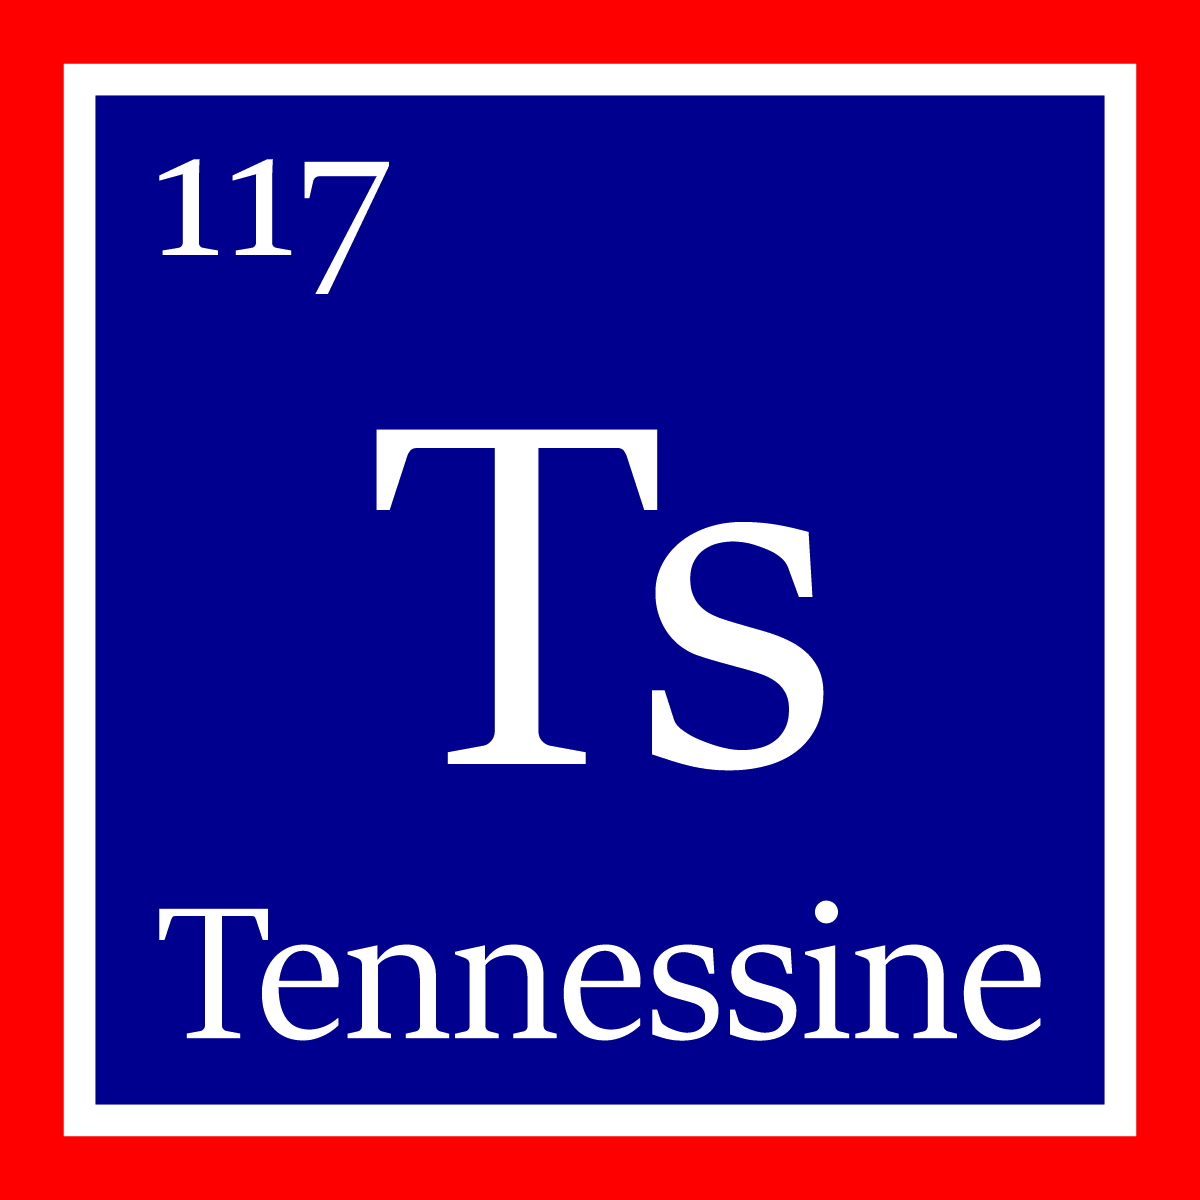 Tennessine Element 117 Officially Named